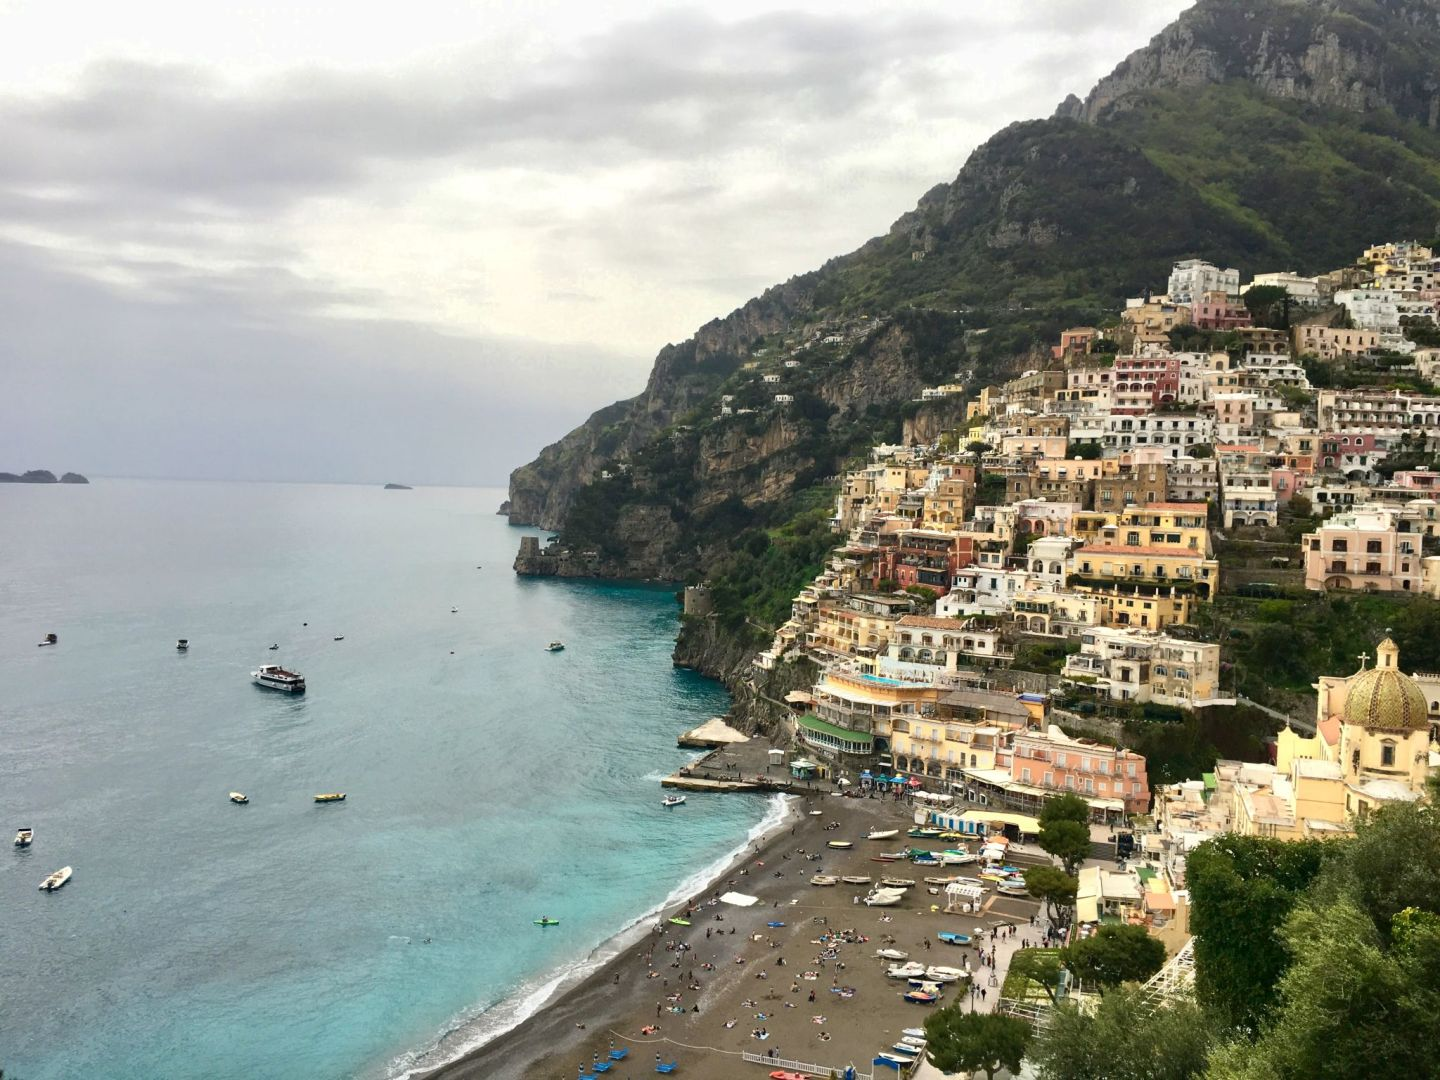 How to see Positano and the Amalfi coast on a budget